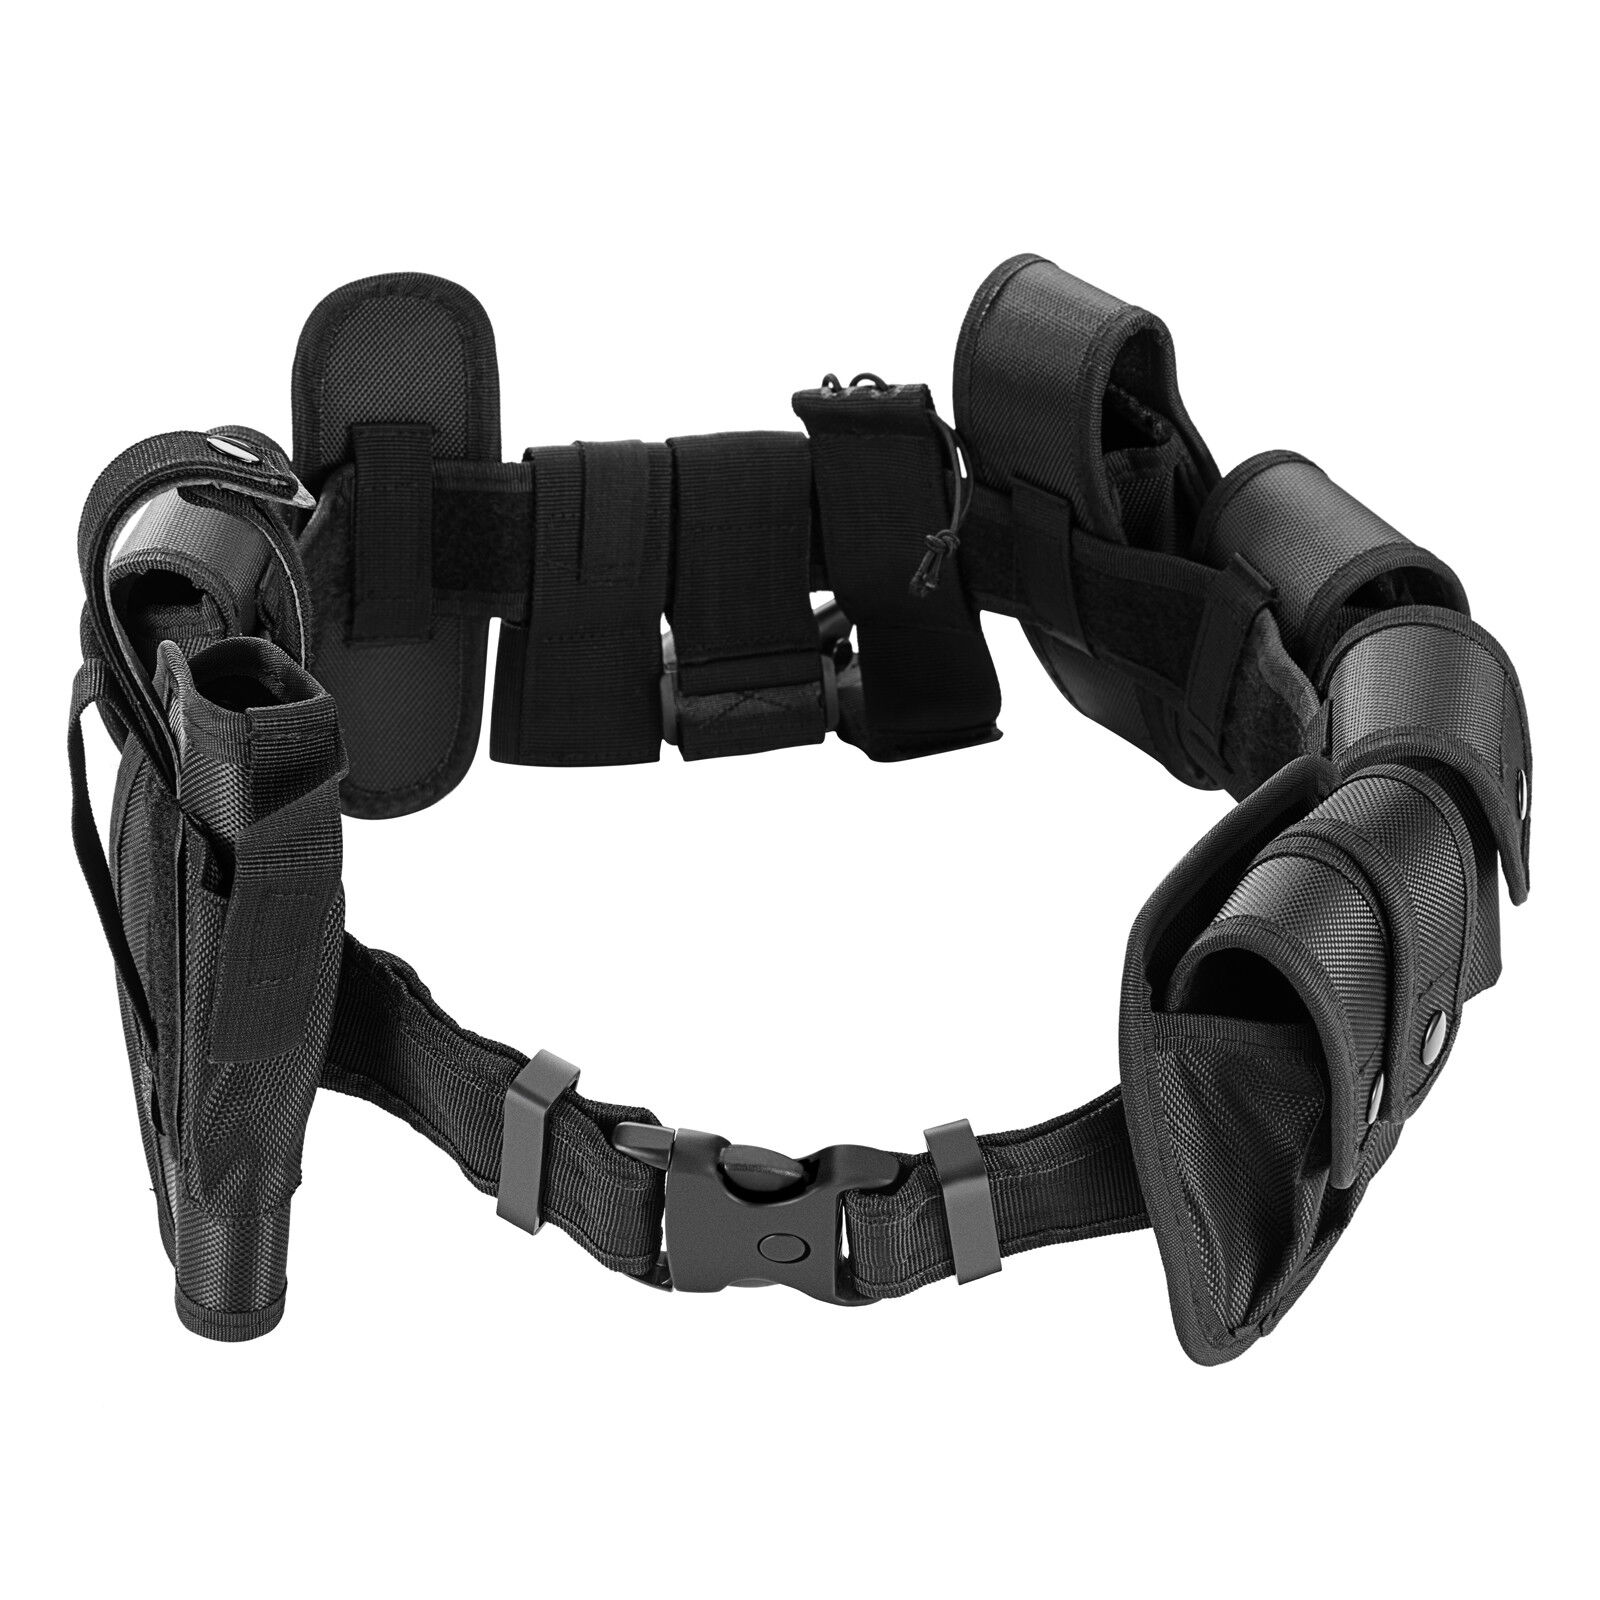 Police Security Guard Enforcement Equipment Duty Belt Tactical 600 Nylon 25 pc Business & Industrial